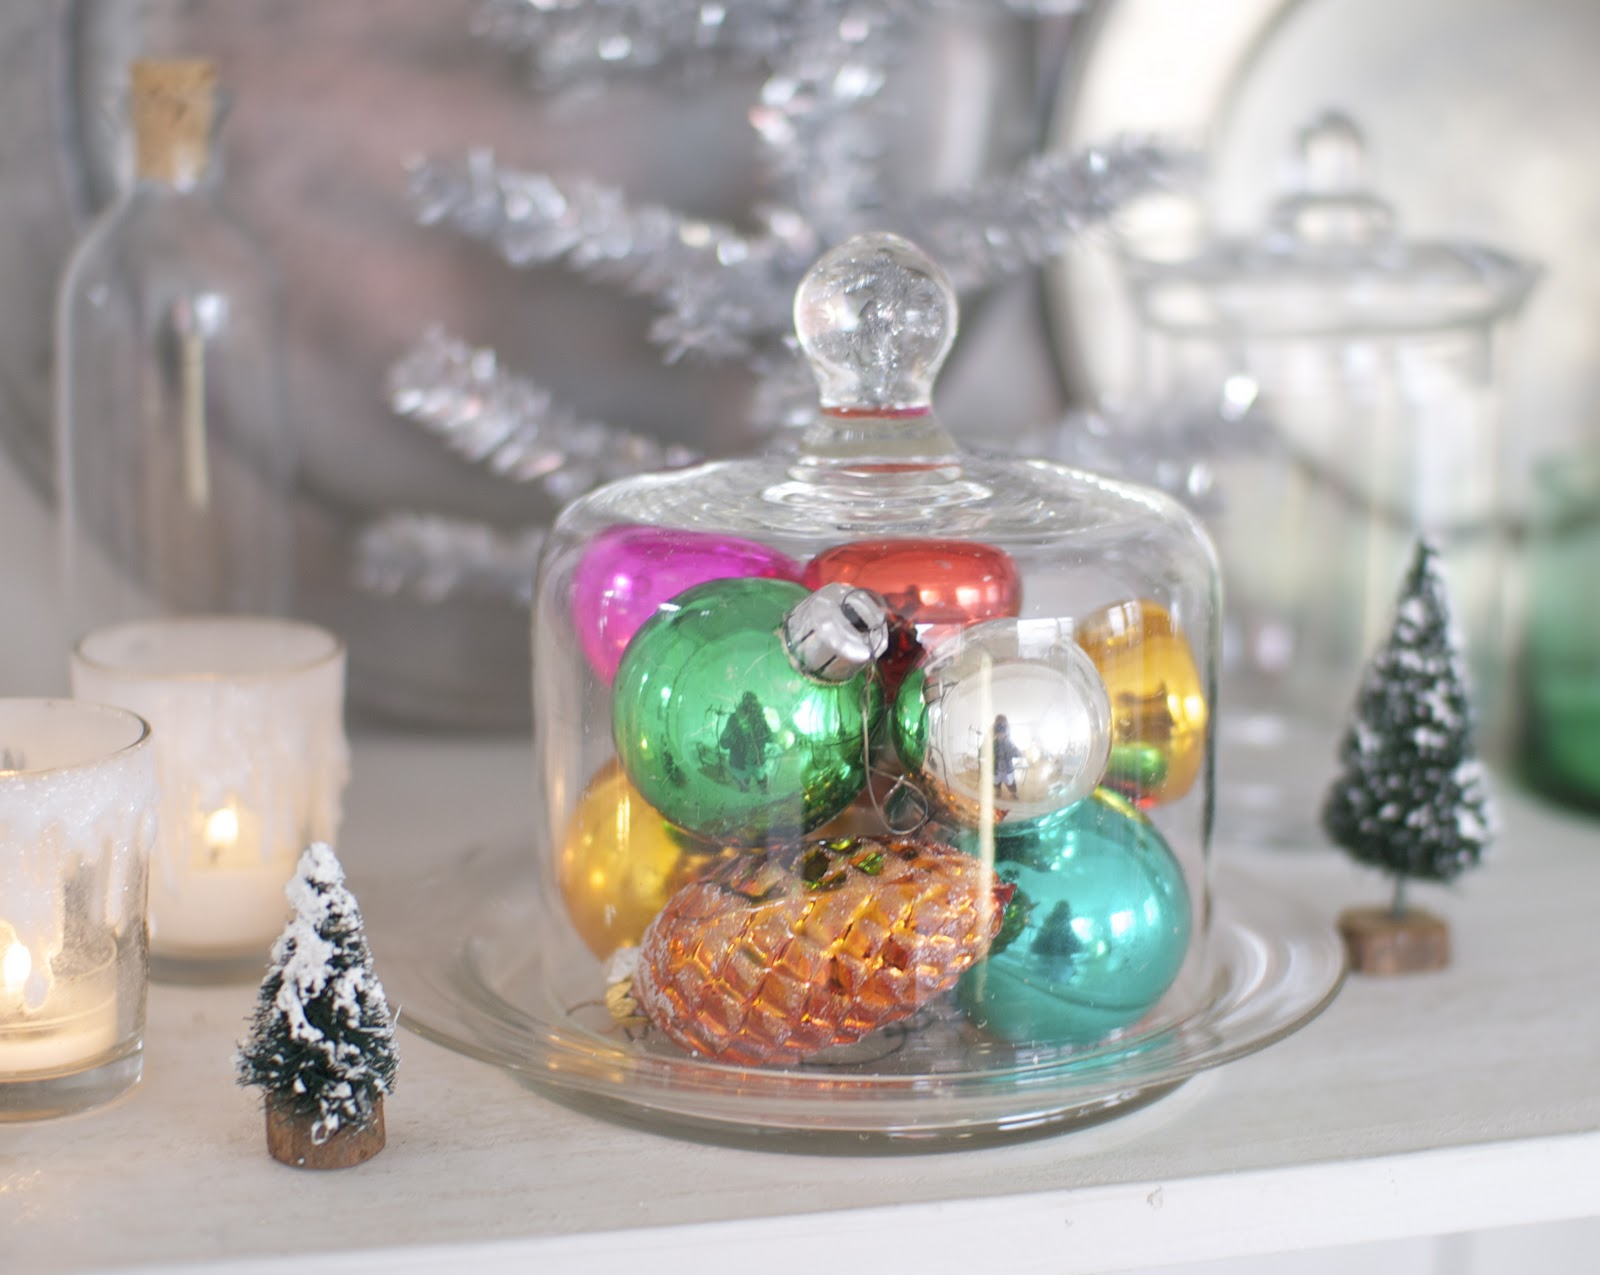 Glass Christmas Balls Decoration Ideas : Ruki duki ideas for decorating with your vintage glass